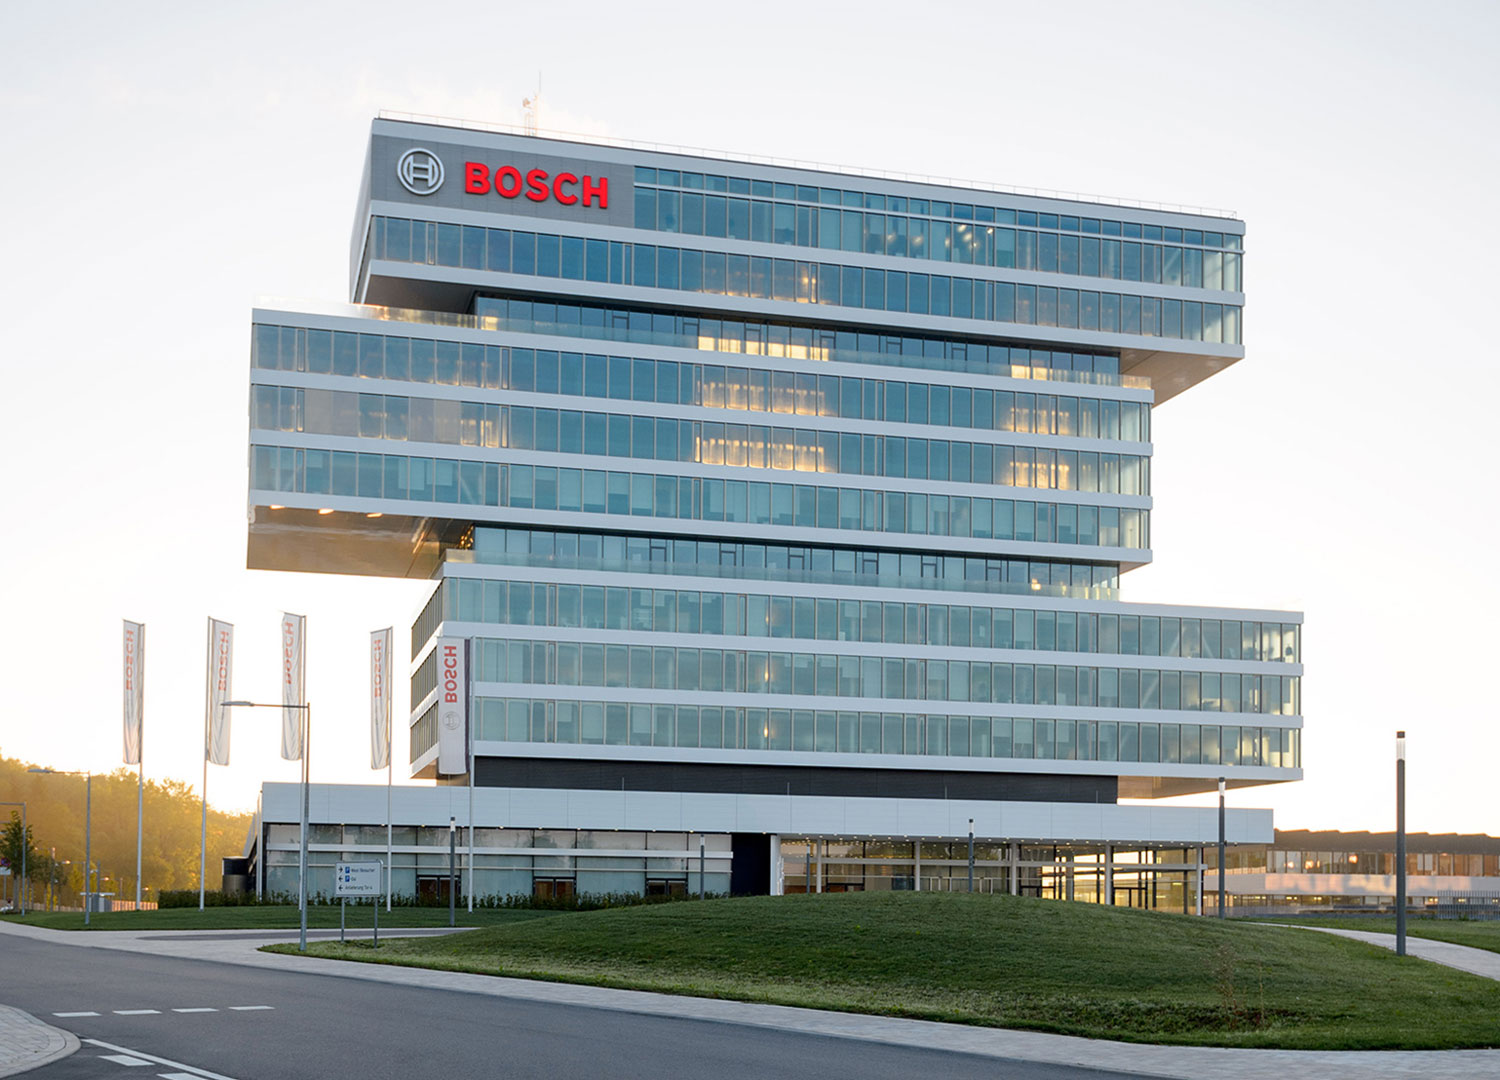 Bosch Office in Gerlingen-Schillerhöhe, Germany | Chicago Connectory